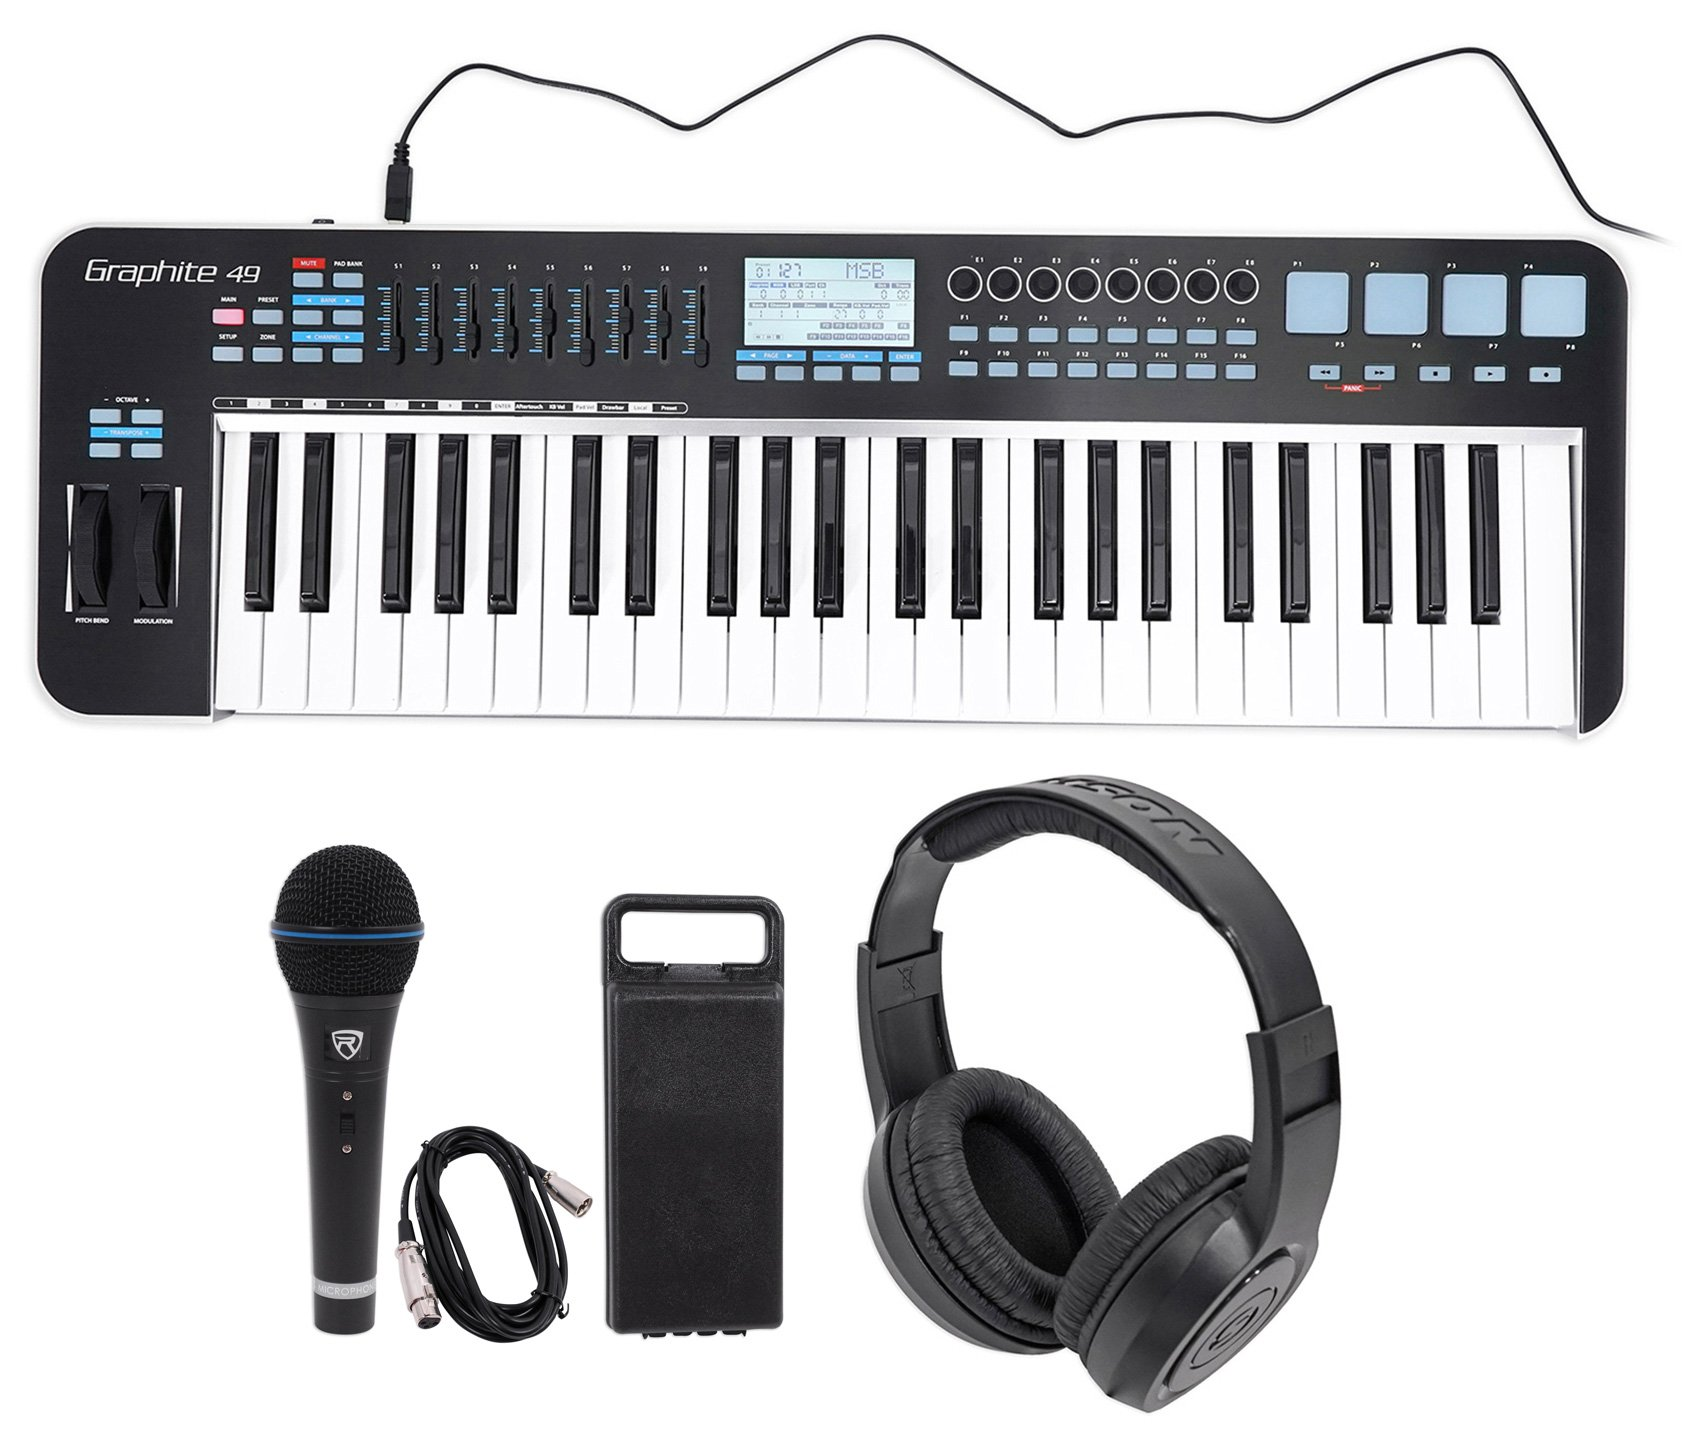 Samson Graphite 49 Key USB MIDI DJ Keyboard Controller+Headphones+Mic+Cable+Case by Samson Technologies